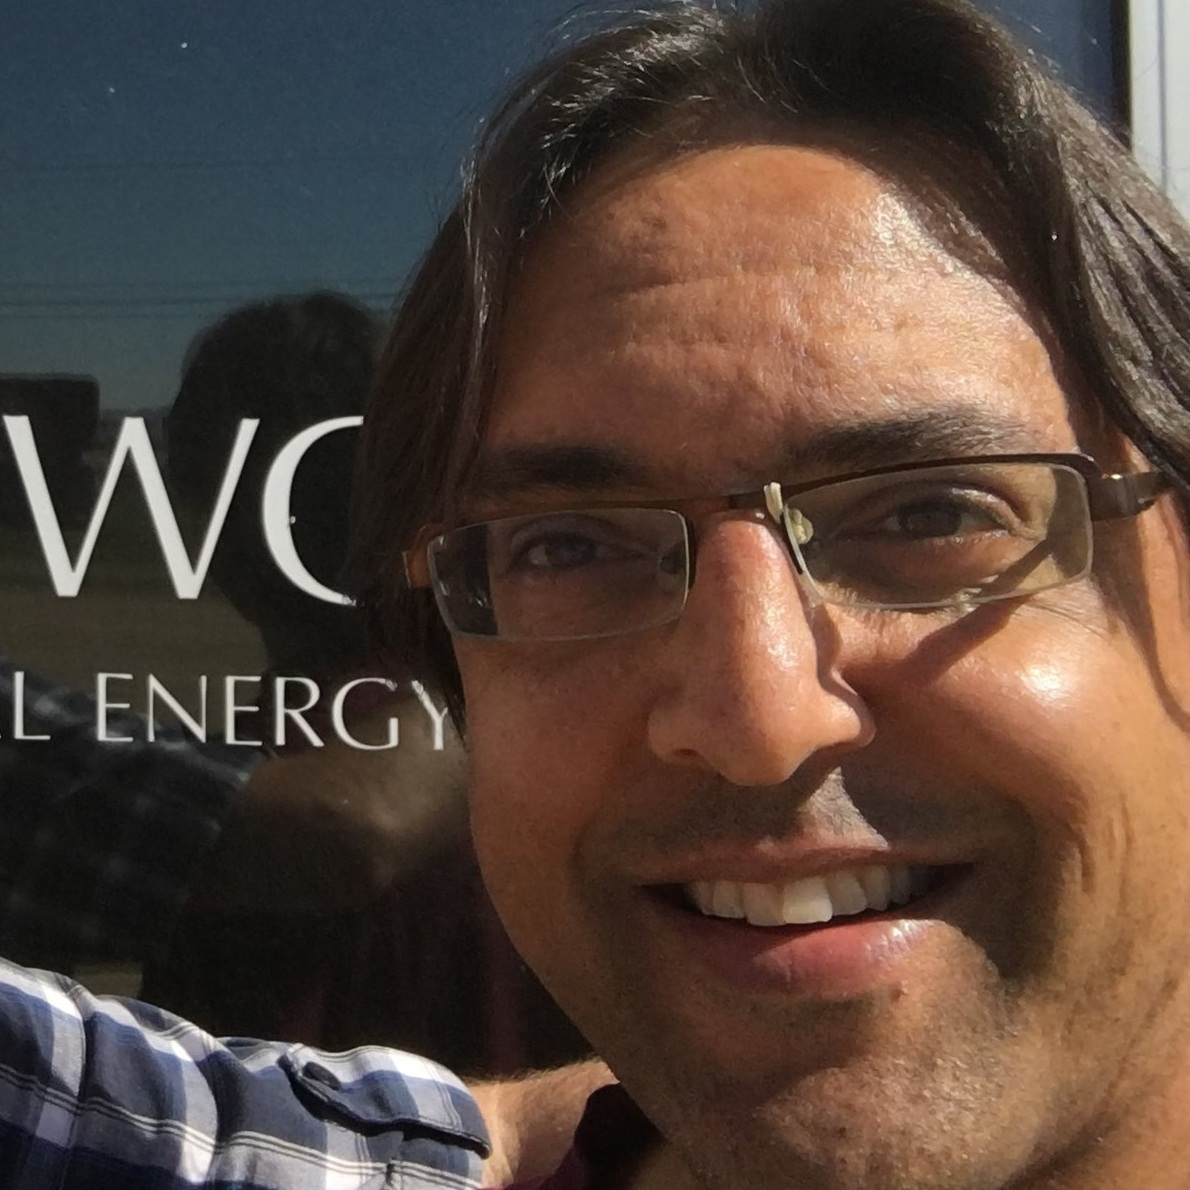 Raj Rathnavalu - Raj is the co-founder of Newo Global Energy and also the innovative University of Alberta's Spirit of the Land Program. Raj is based out of Camrose Alberta and is available to do public speaking and workshops.